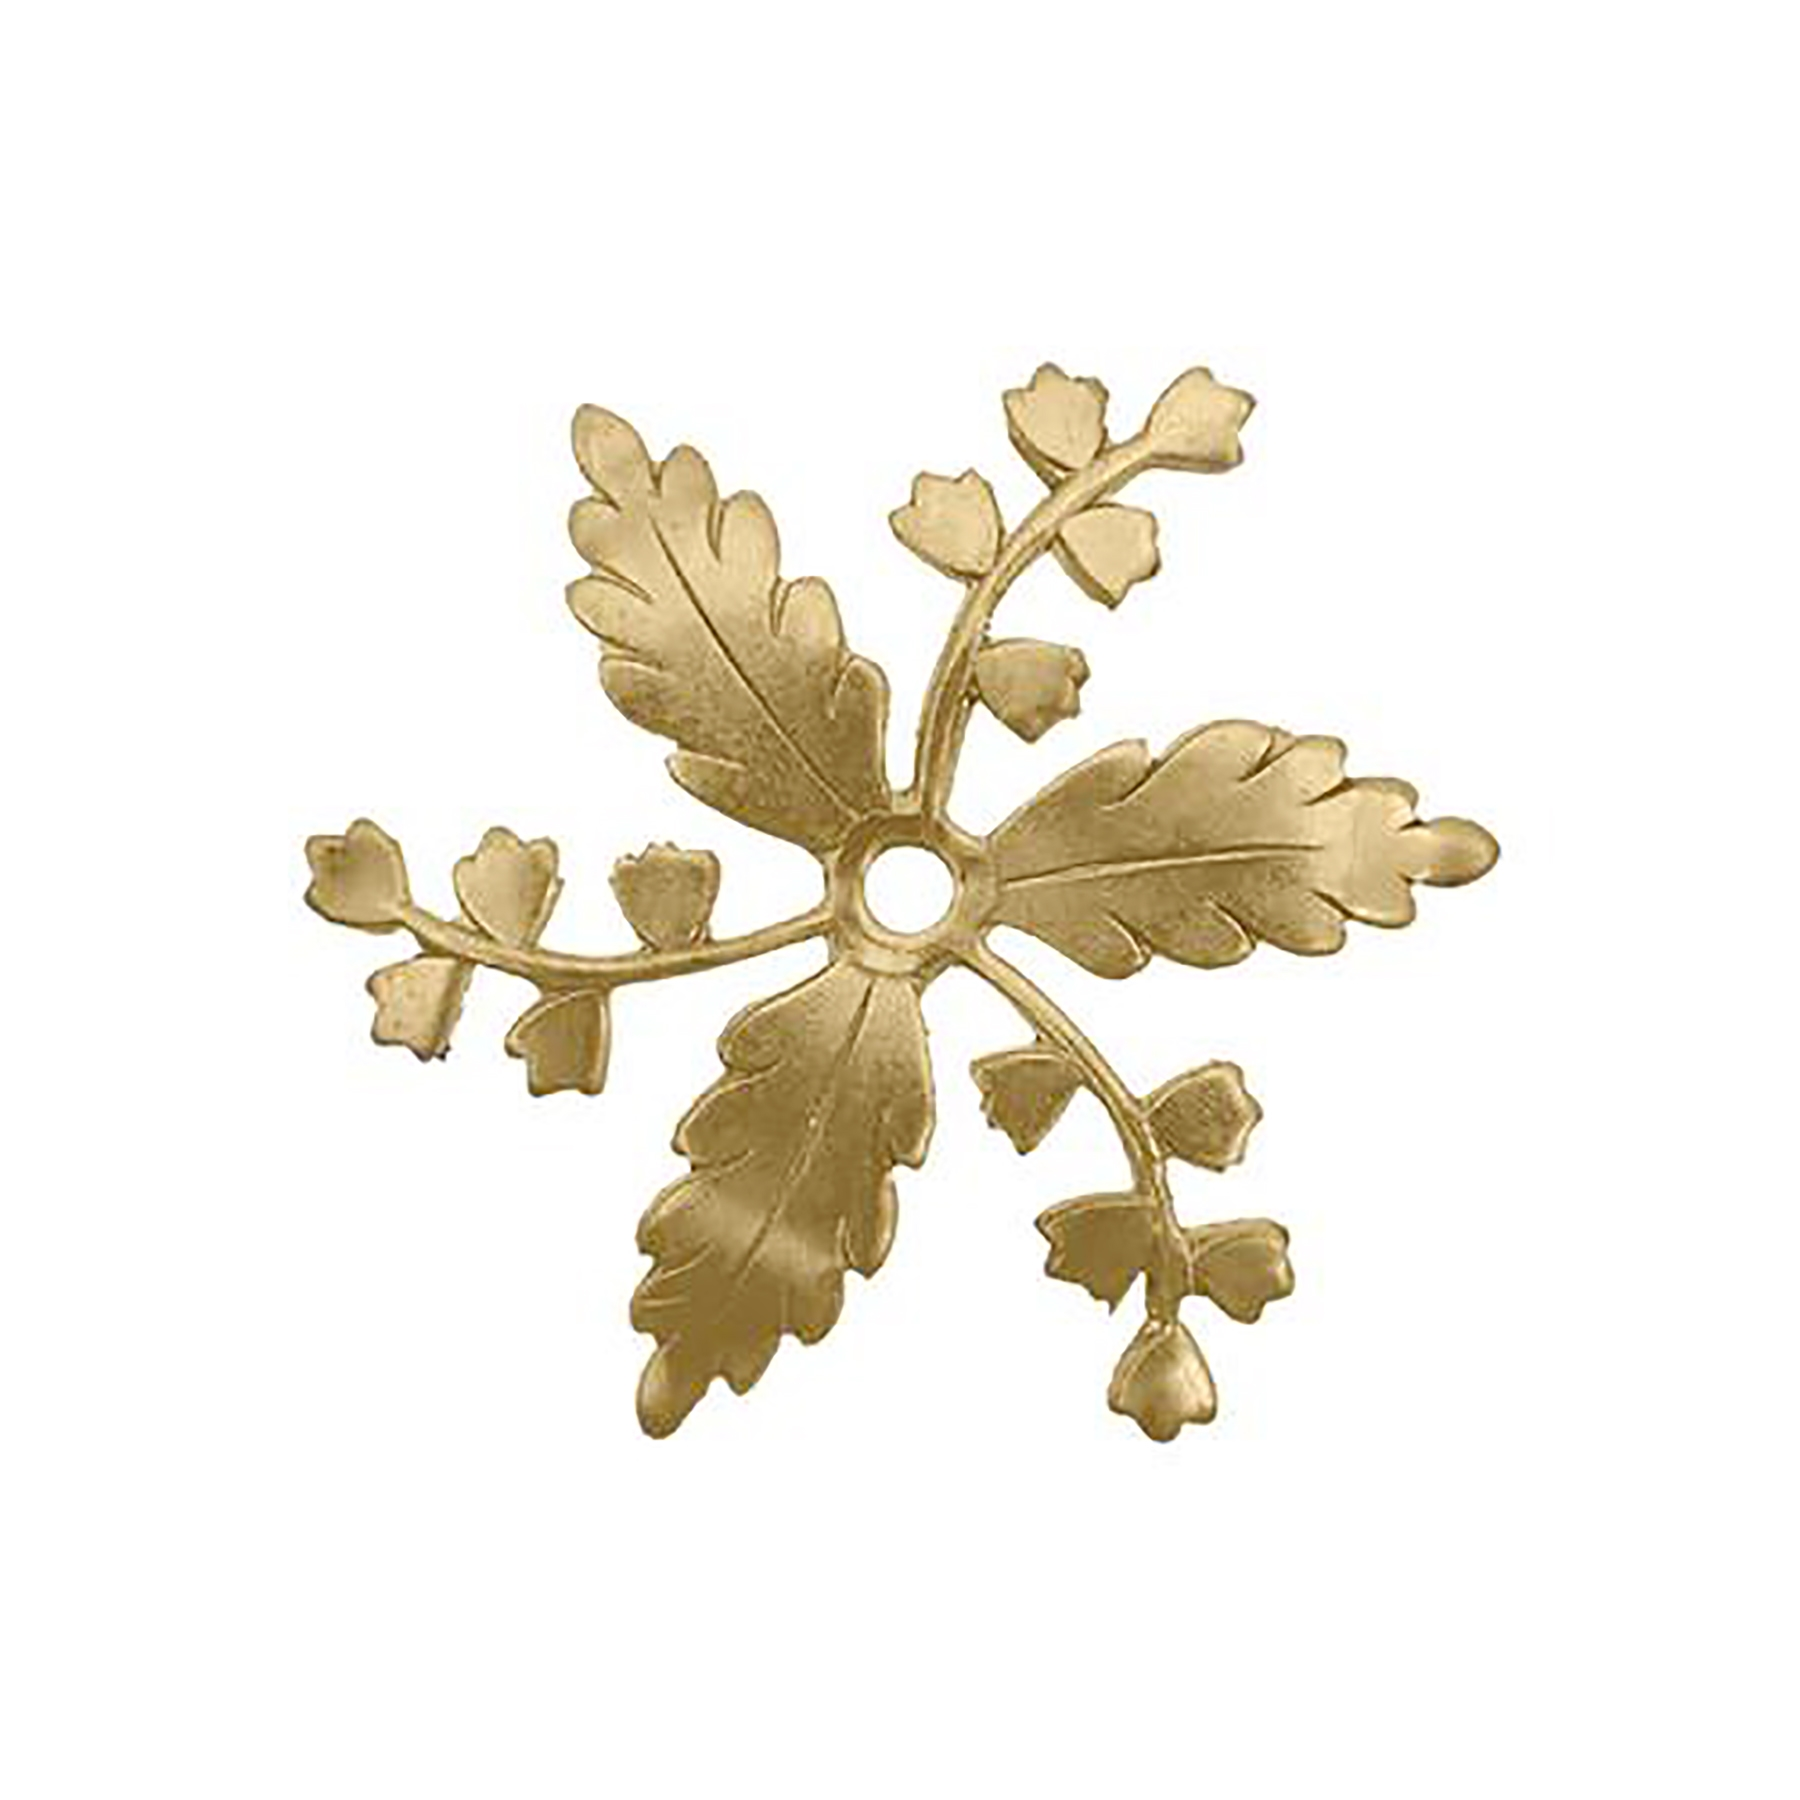 brass leaves, caging leaves, jewelry making, raw brass jewelry, 06262, B'sue Boutiques, nickel free jewelry, US made brass jewelry, beading supplies, drilled leaves, beading leaves, vintage jewellery supplies,